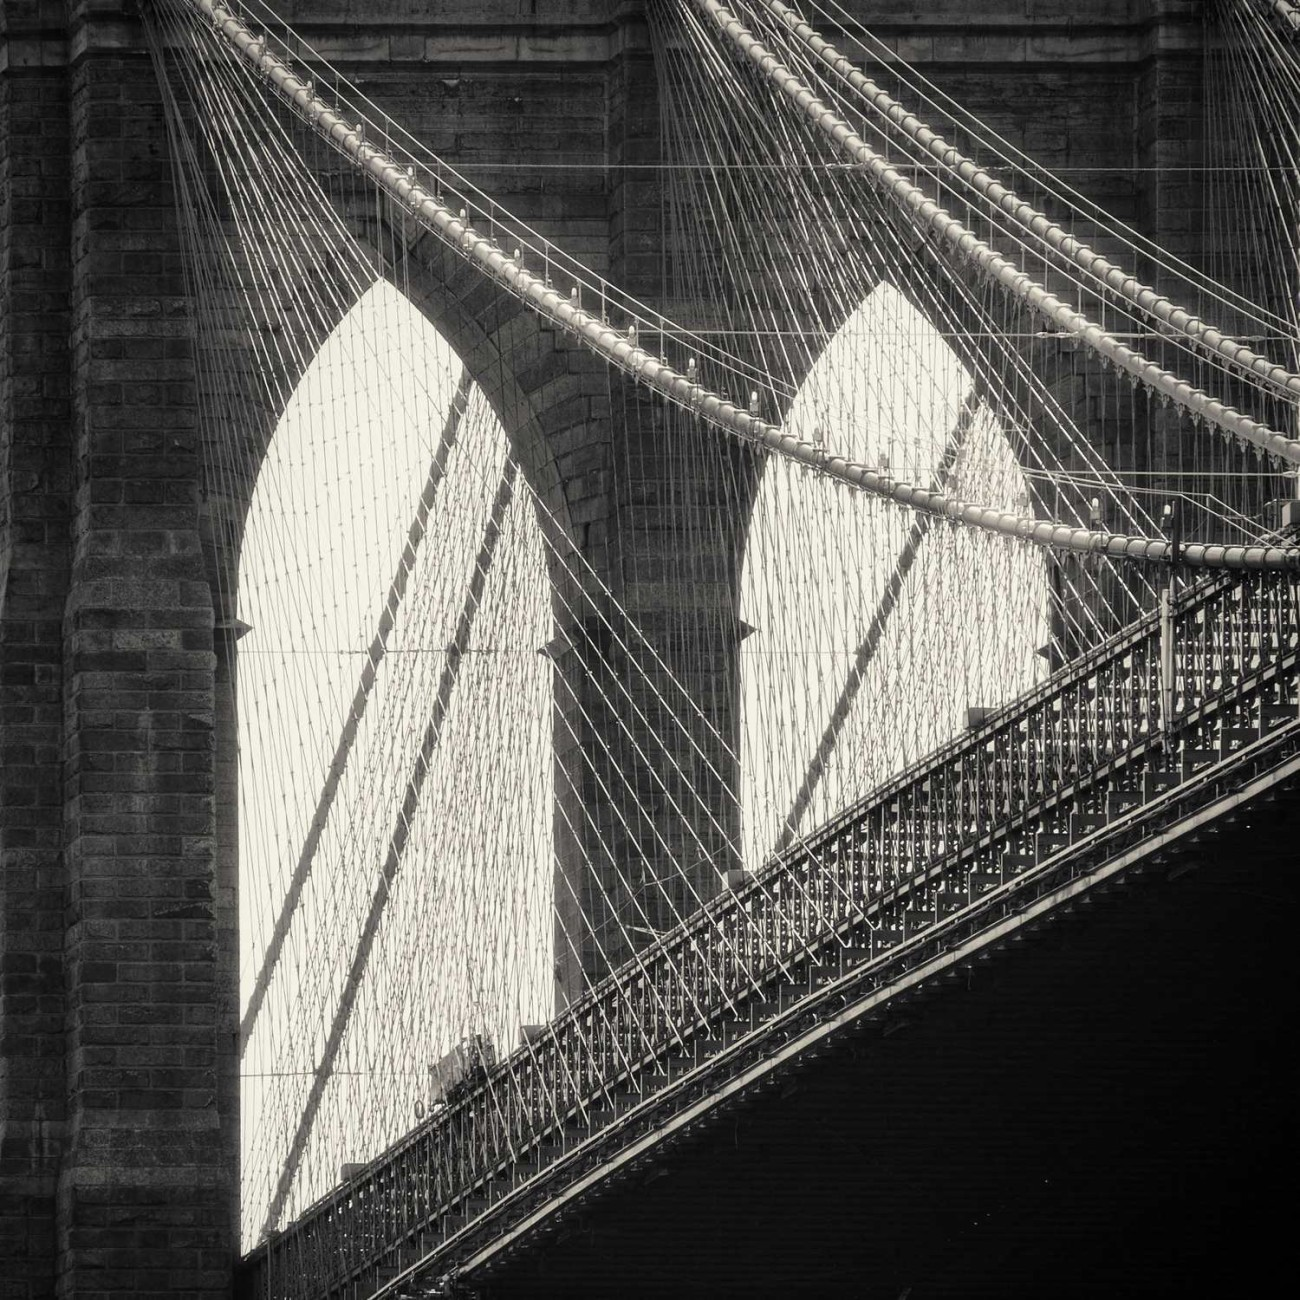 Brooklyn Bridge and cables, New York, 2013